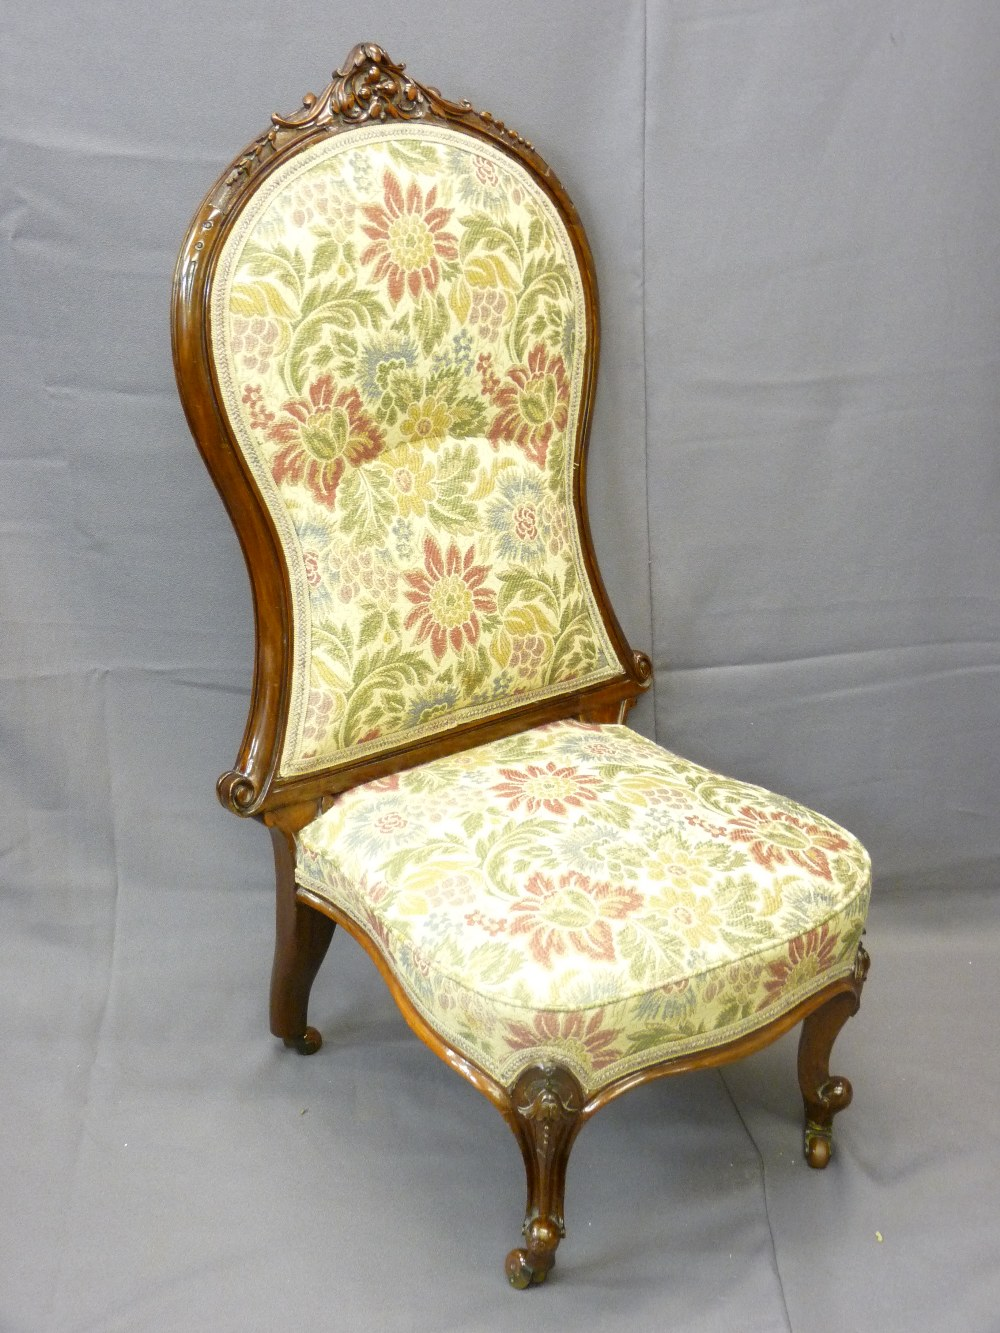 Lot 24 - VICTORIAN SPOON-BACK TYPE CHAIR with carved detail